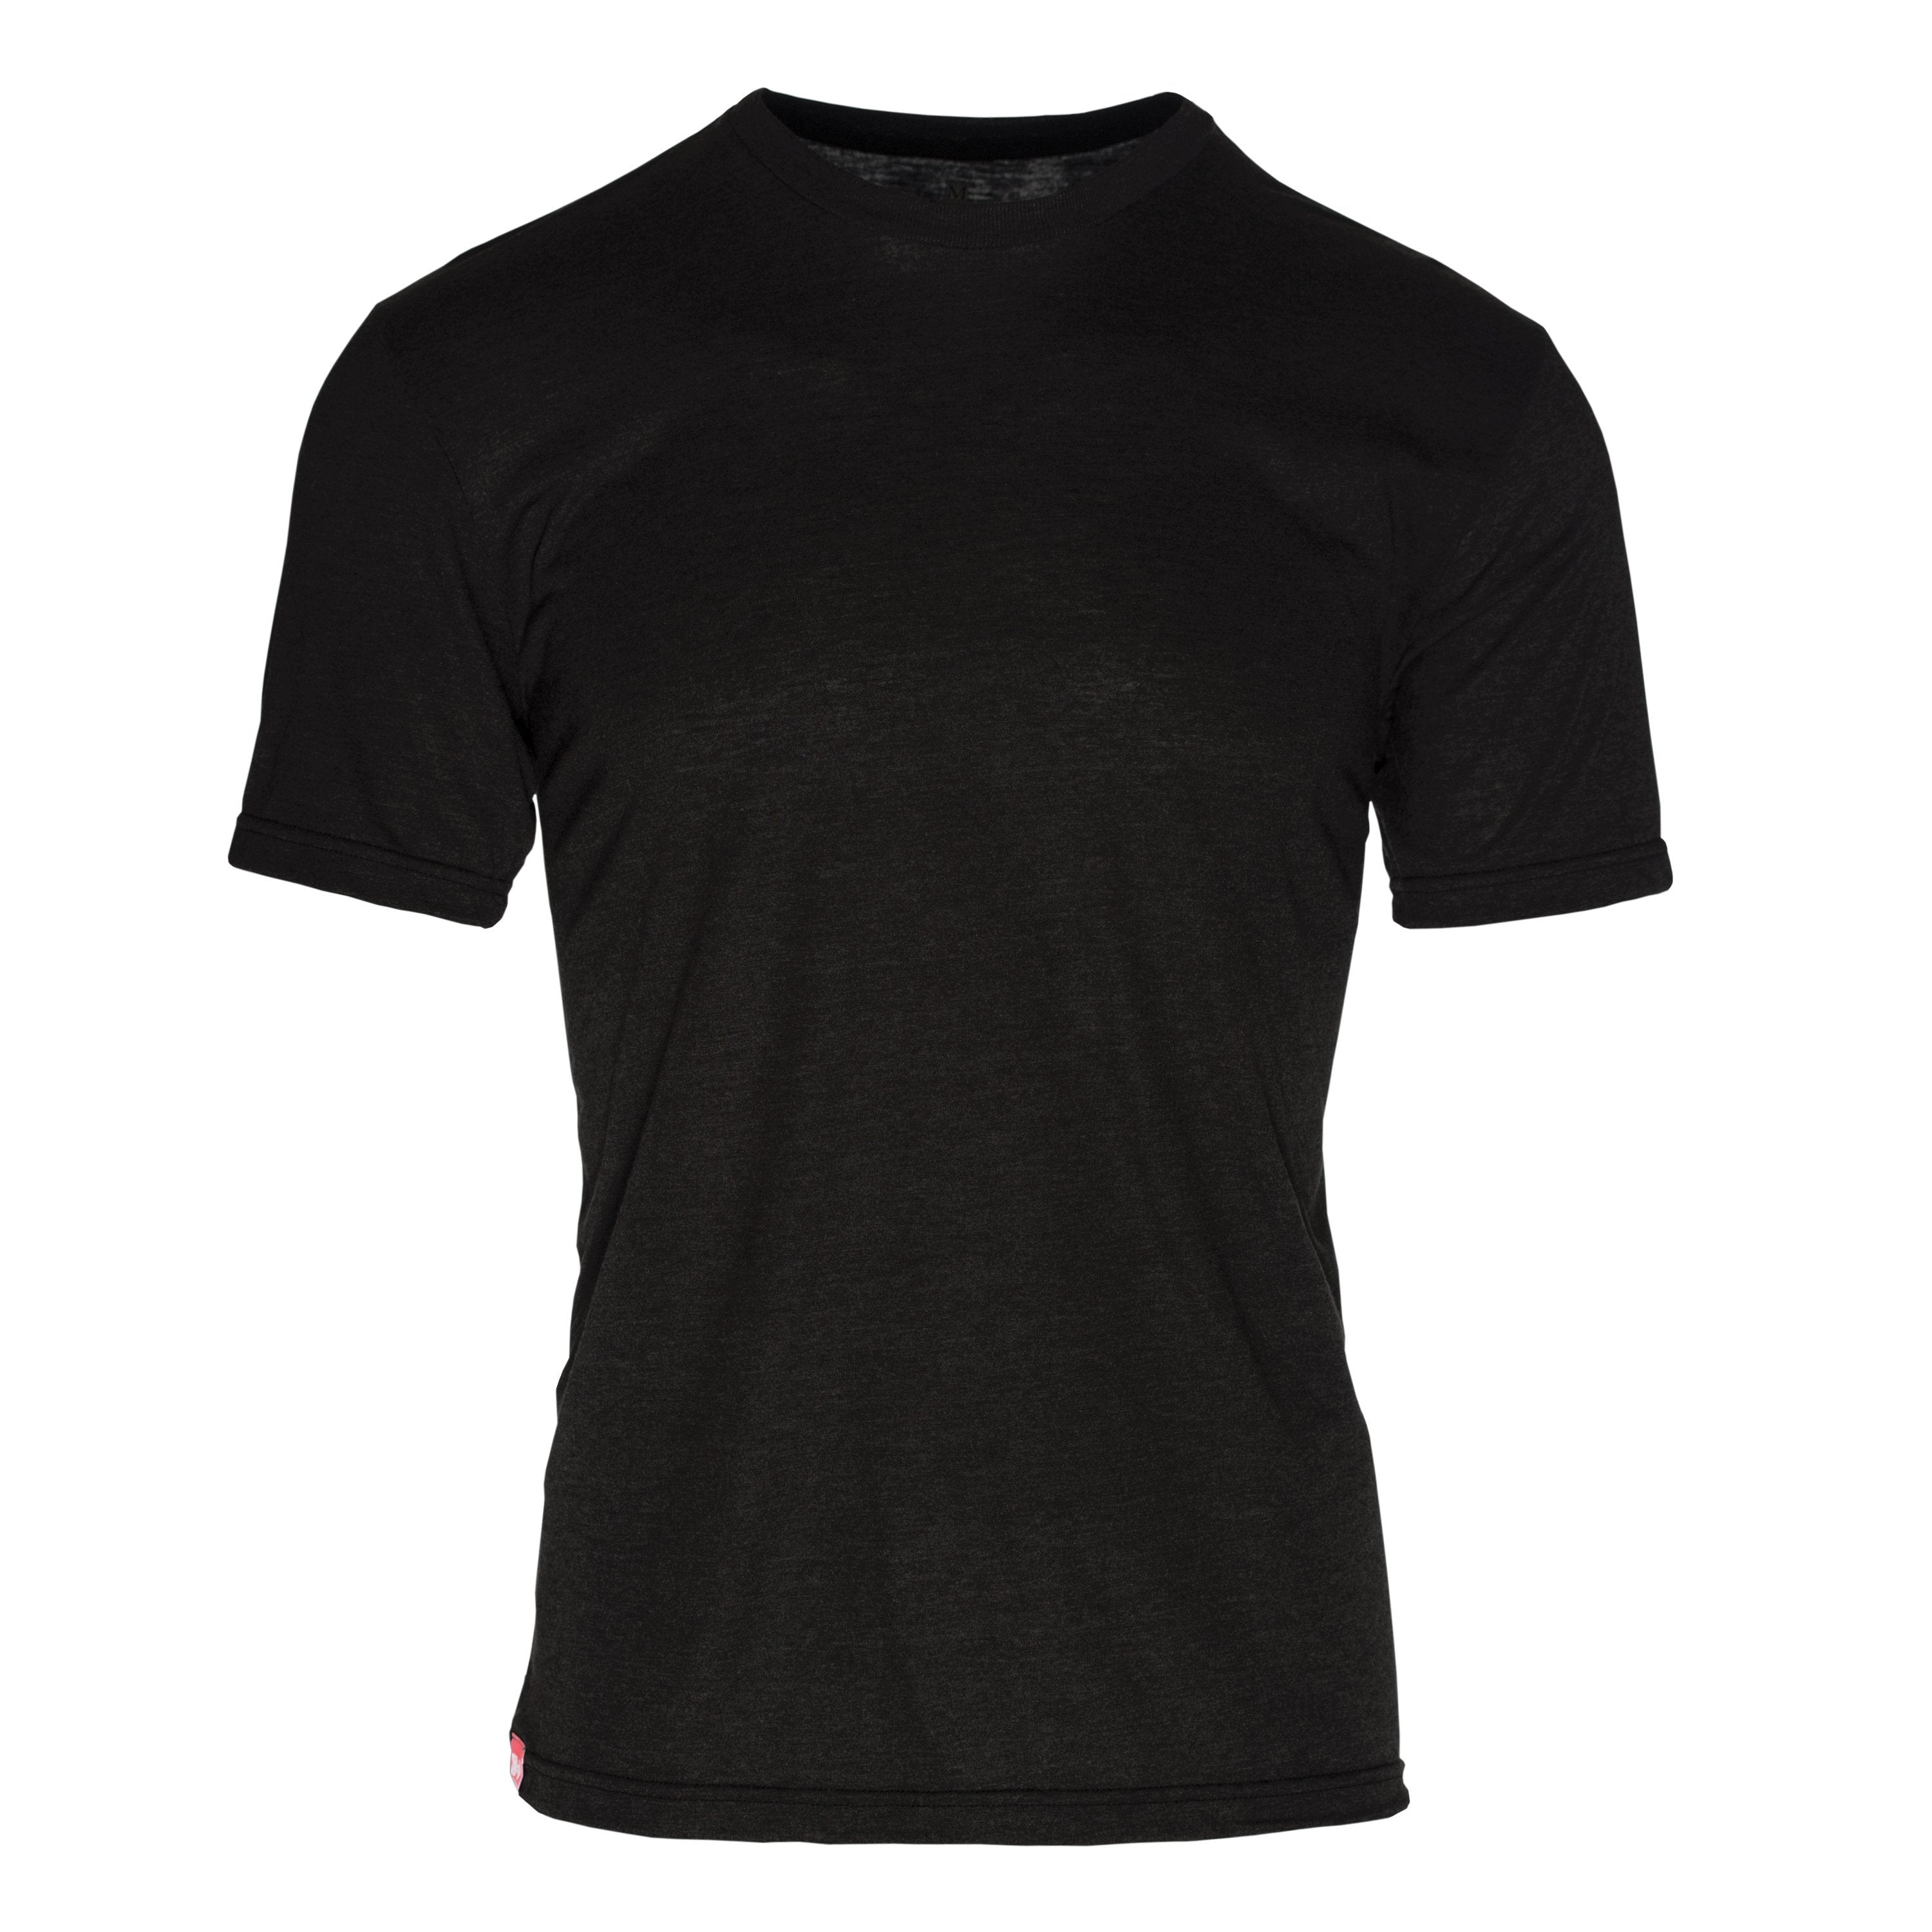 PC101BK Eco REPREVE® Recycled Polyester/Cotton Crew T-Shirt  - Black